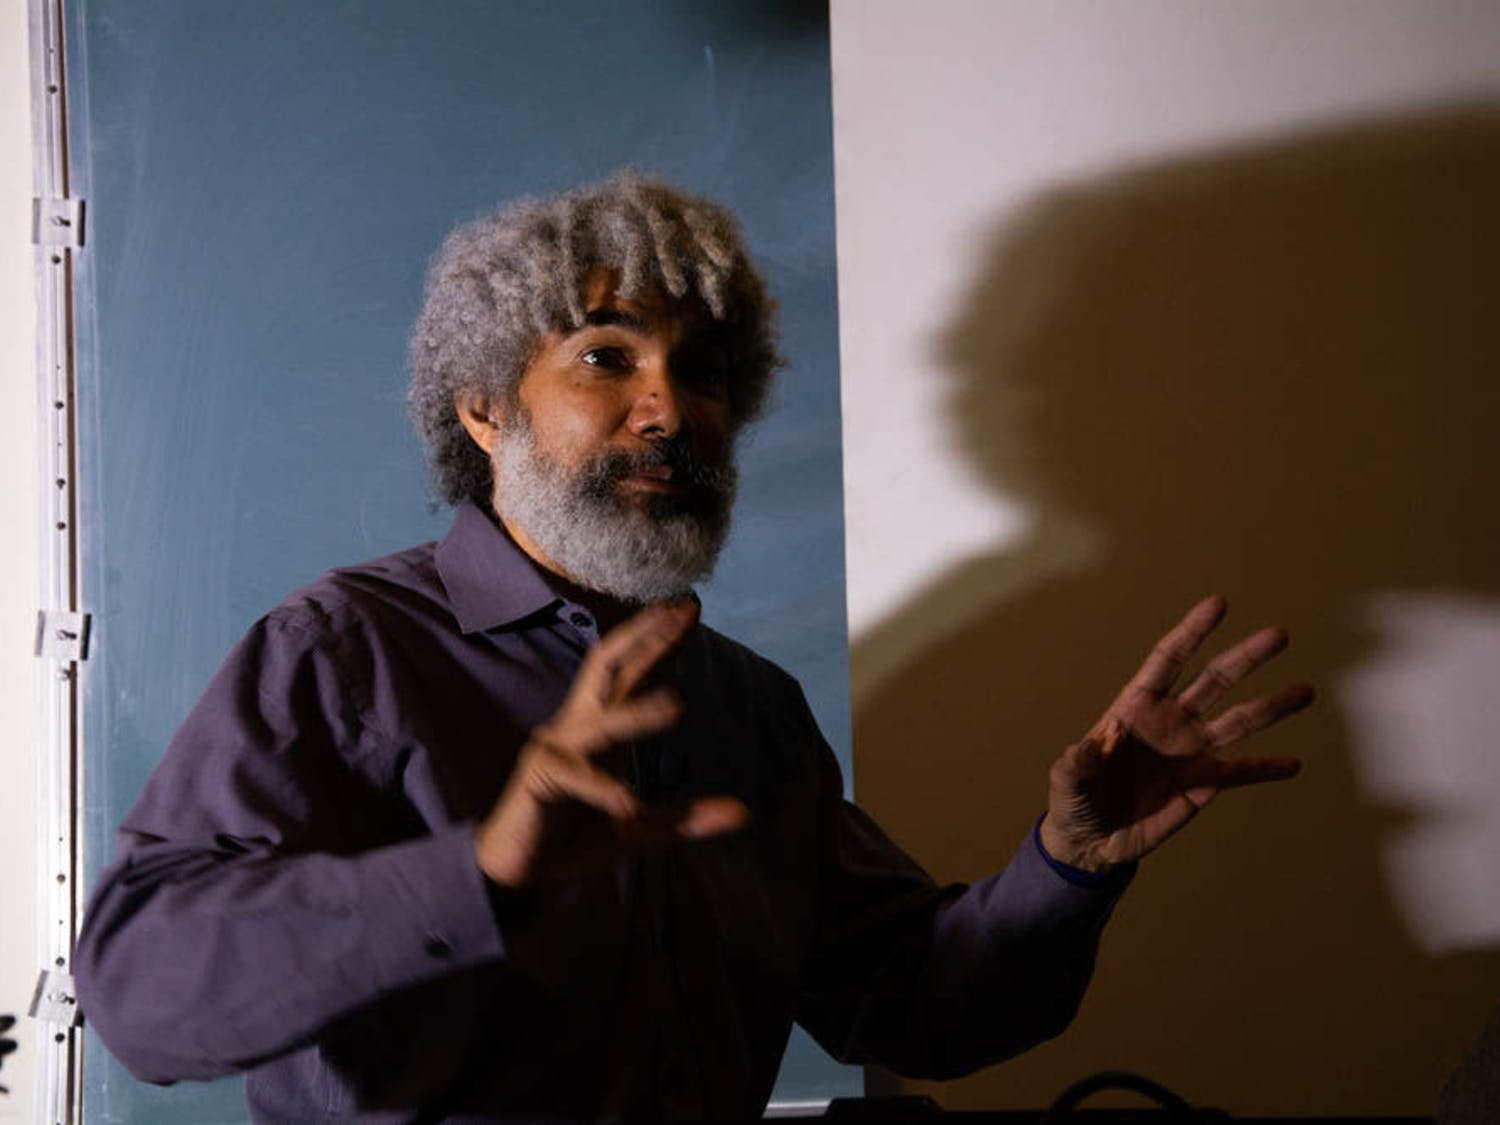 Fred Wilson, a New York-based conceptual artist, brings representation and visibility of racial minority subjects by recontextualizing mainstream spaces in museums and cultural institutions. Hepresented a lecture to about 80 students and art enthusiasts Jan. 15 at Little Hall.